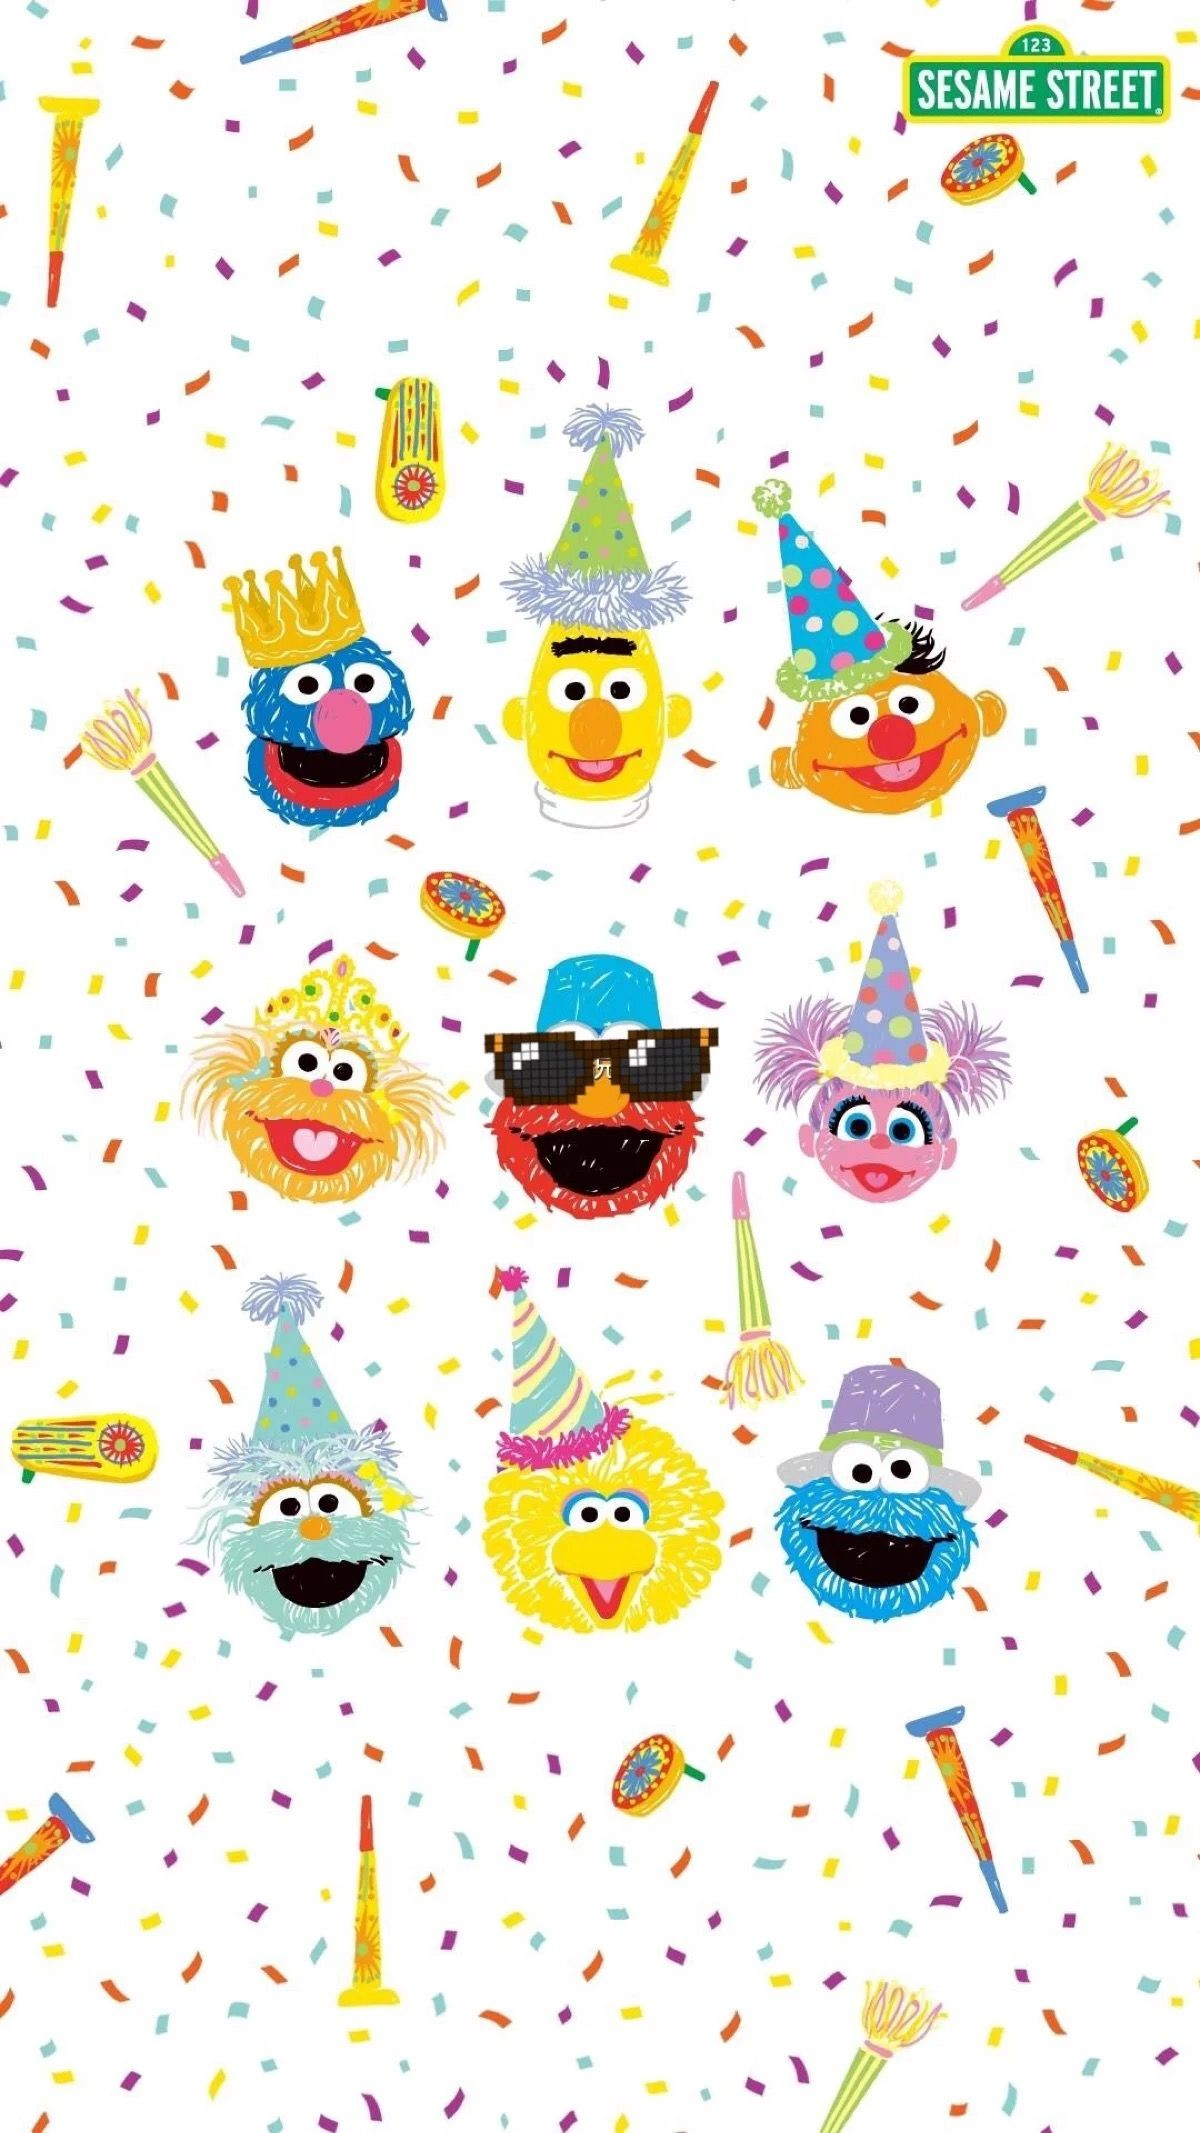 Res: 1200x2133, Cartoon Background, Wallpaper Patterns, Sesame Streets, Iphone Wallpapers,  Cartoon Network, Sanrio, Ios, Android, Backgrounds